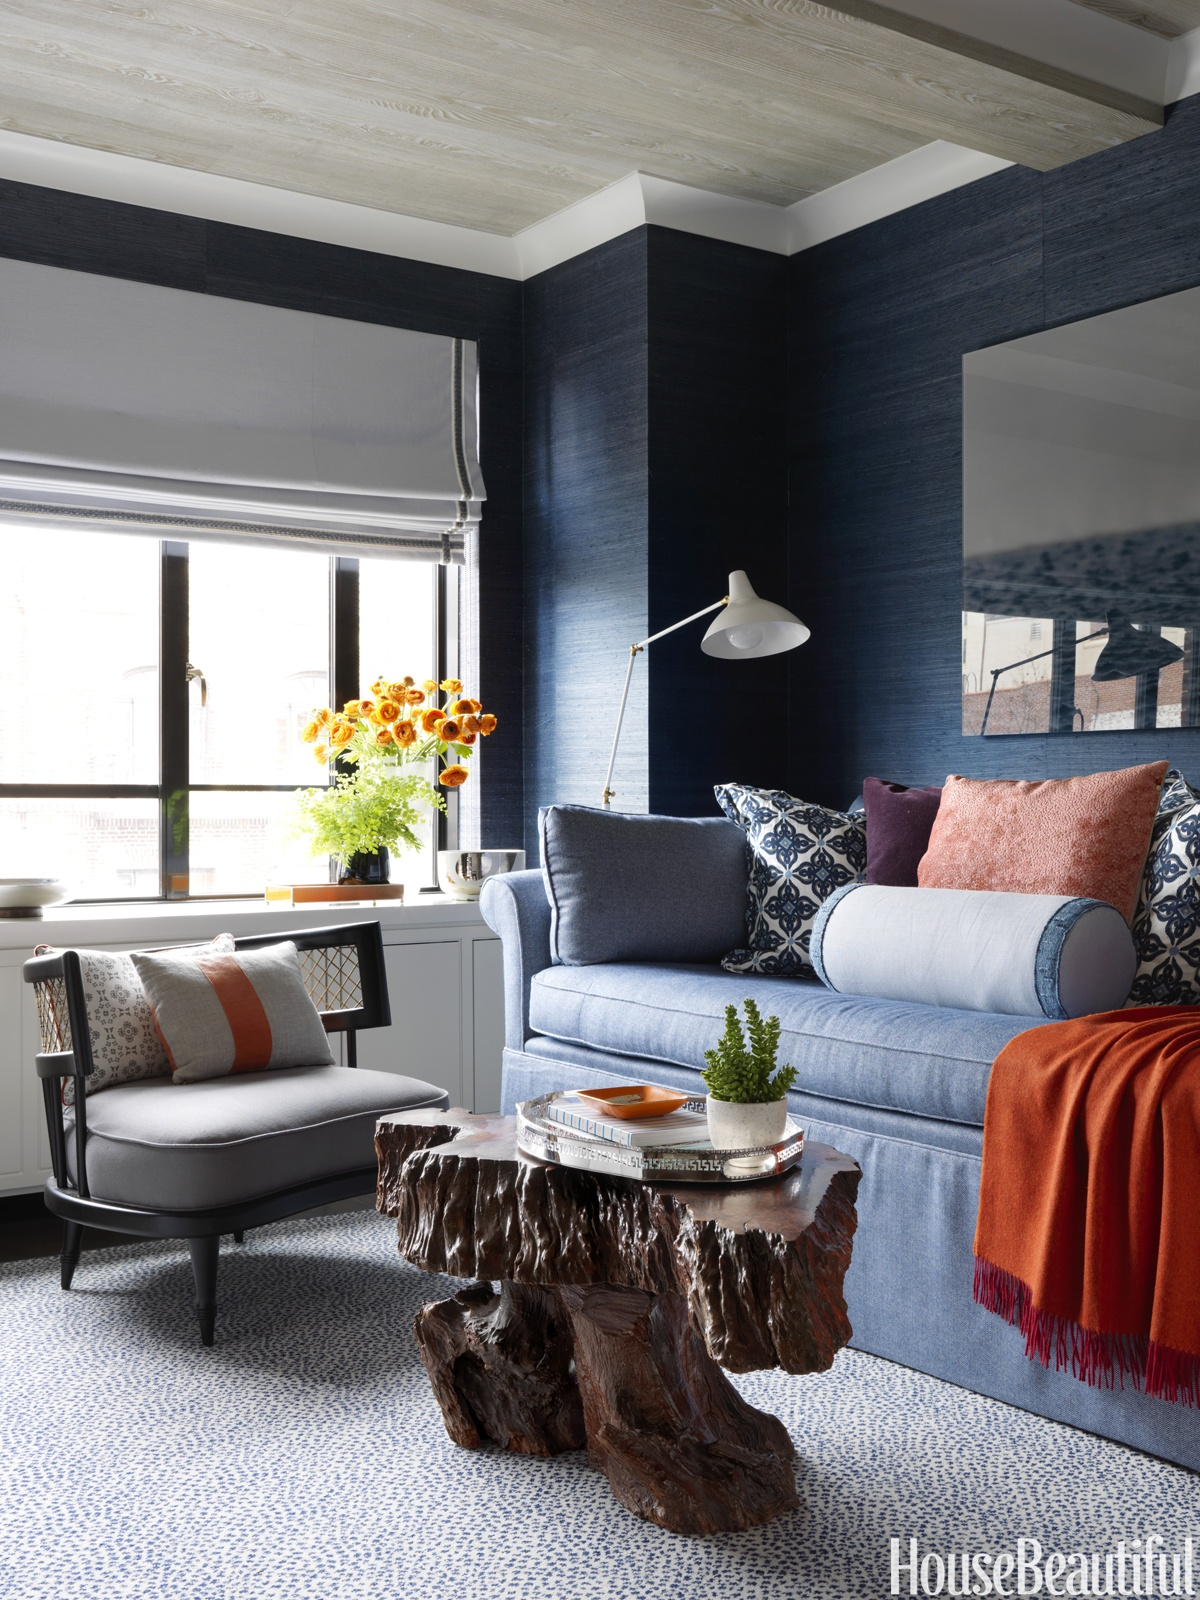 blue Designer Rug in Sitting Area designed by Christina Murphy featured in Asmara Interview with the designer